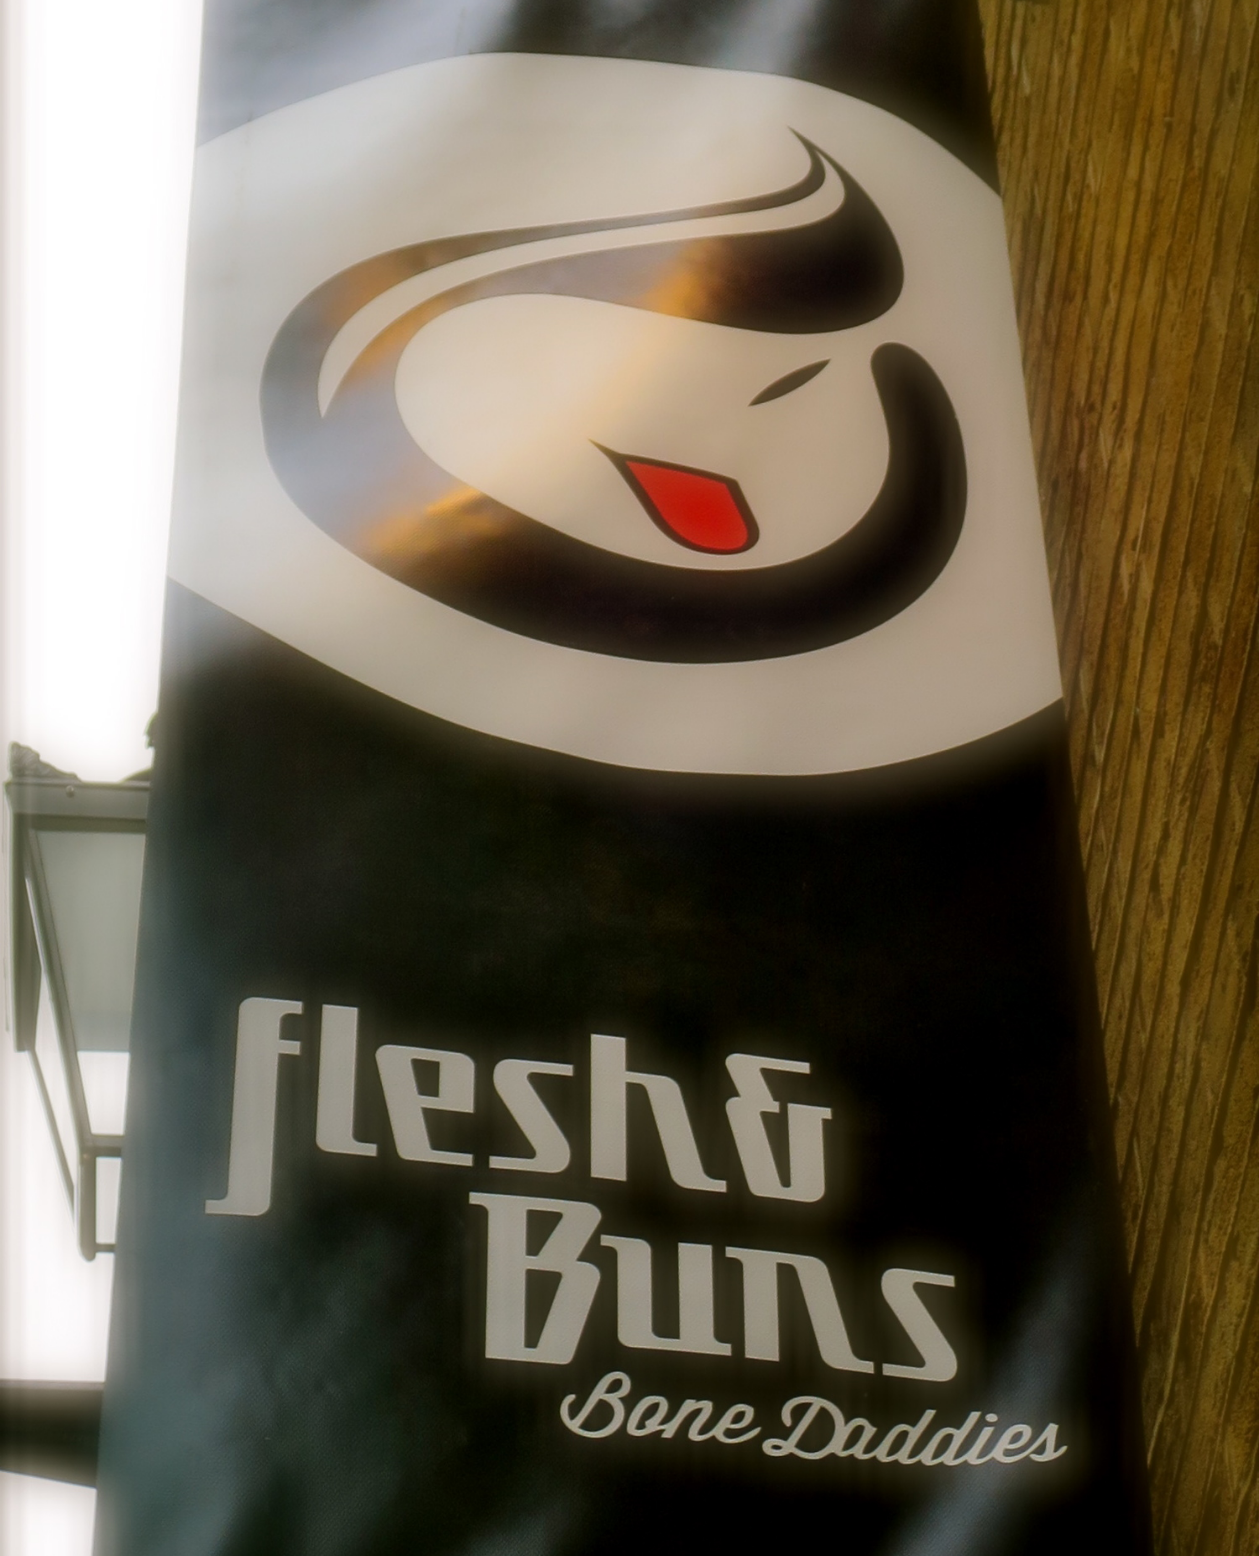 ... and dive into Flesh & Buns!